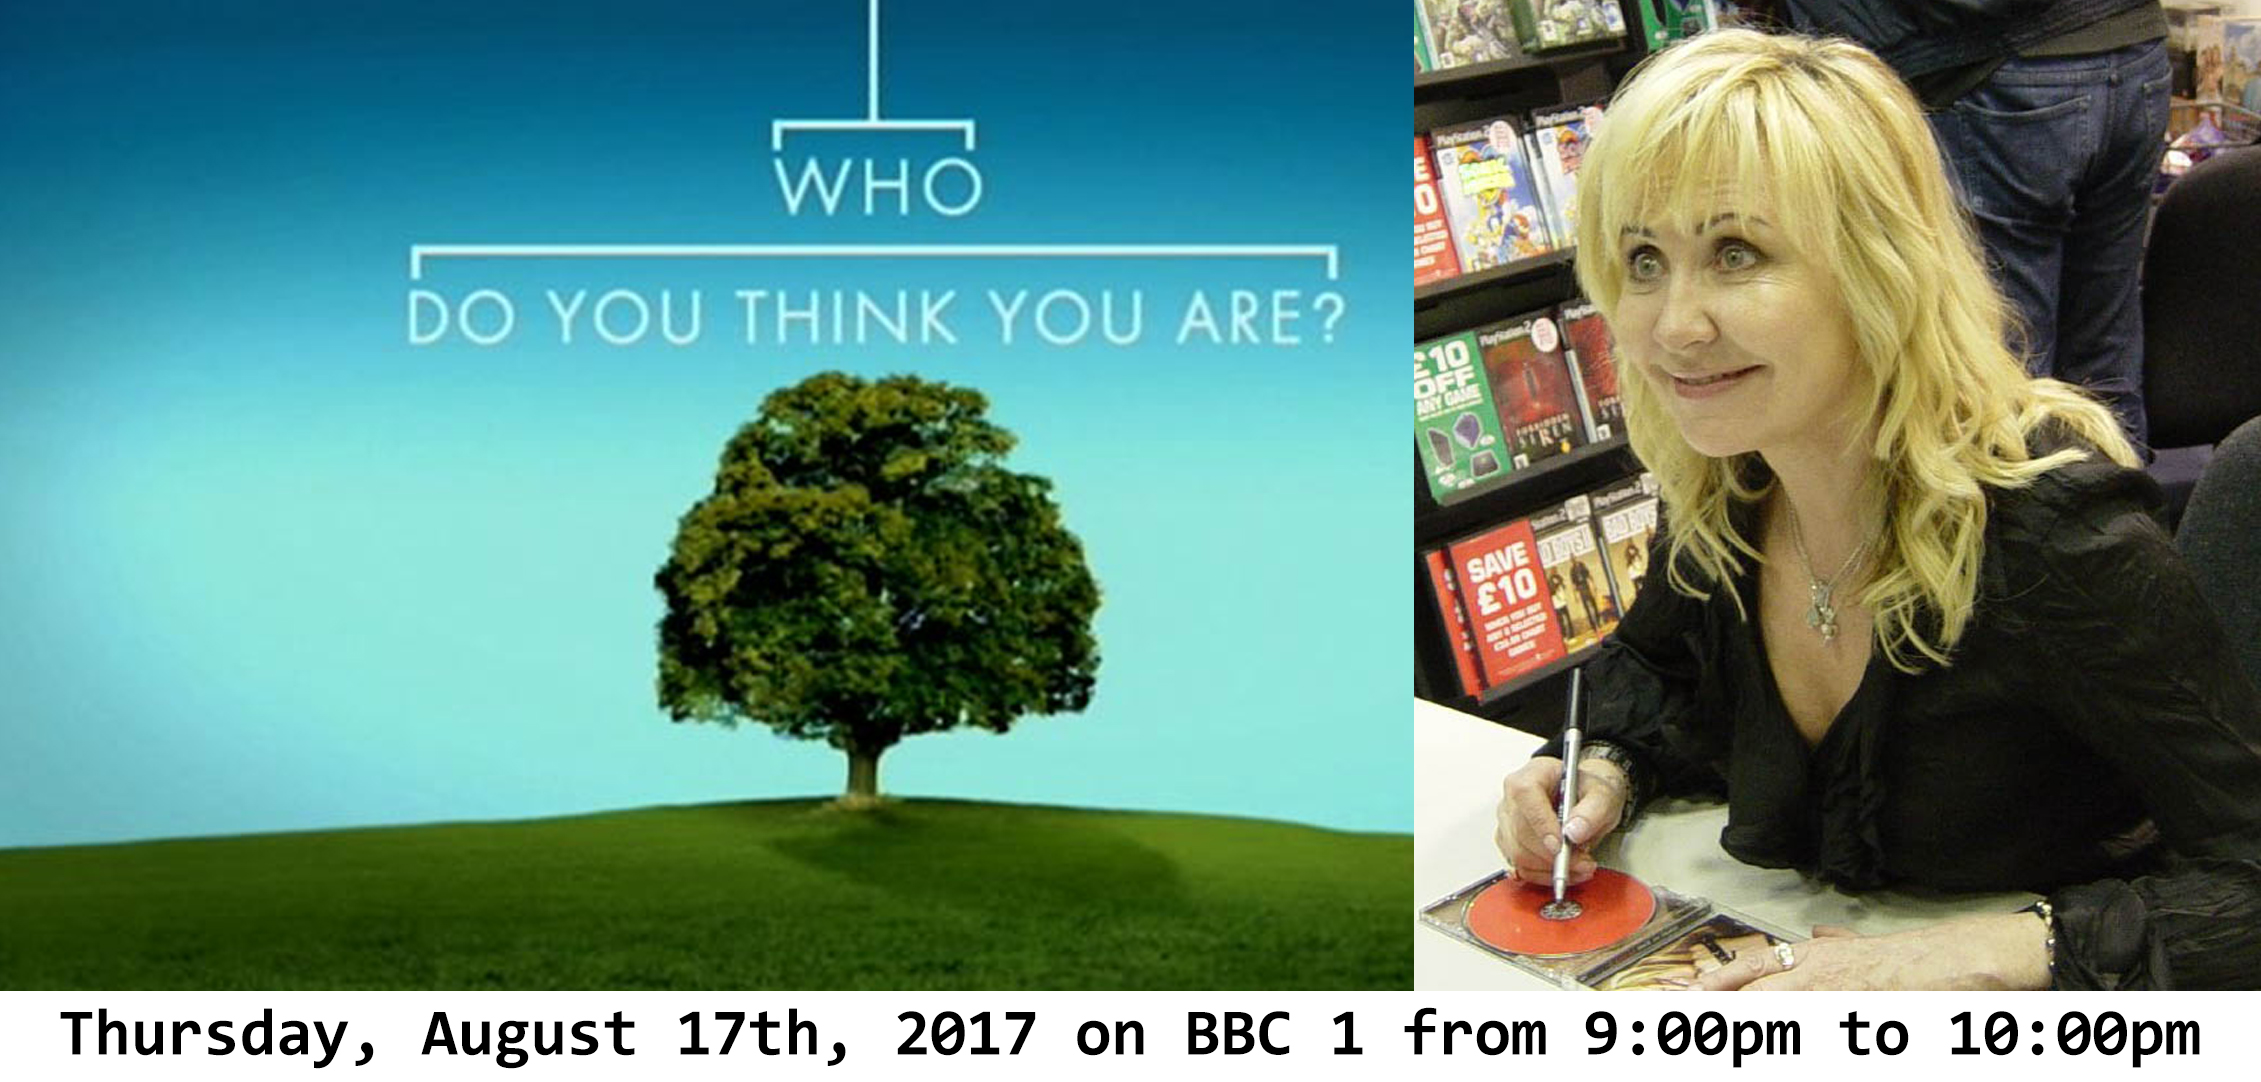 Lulu explores her family history in a new BBC episode of Who Do You Think You Are?